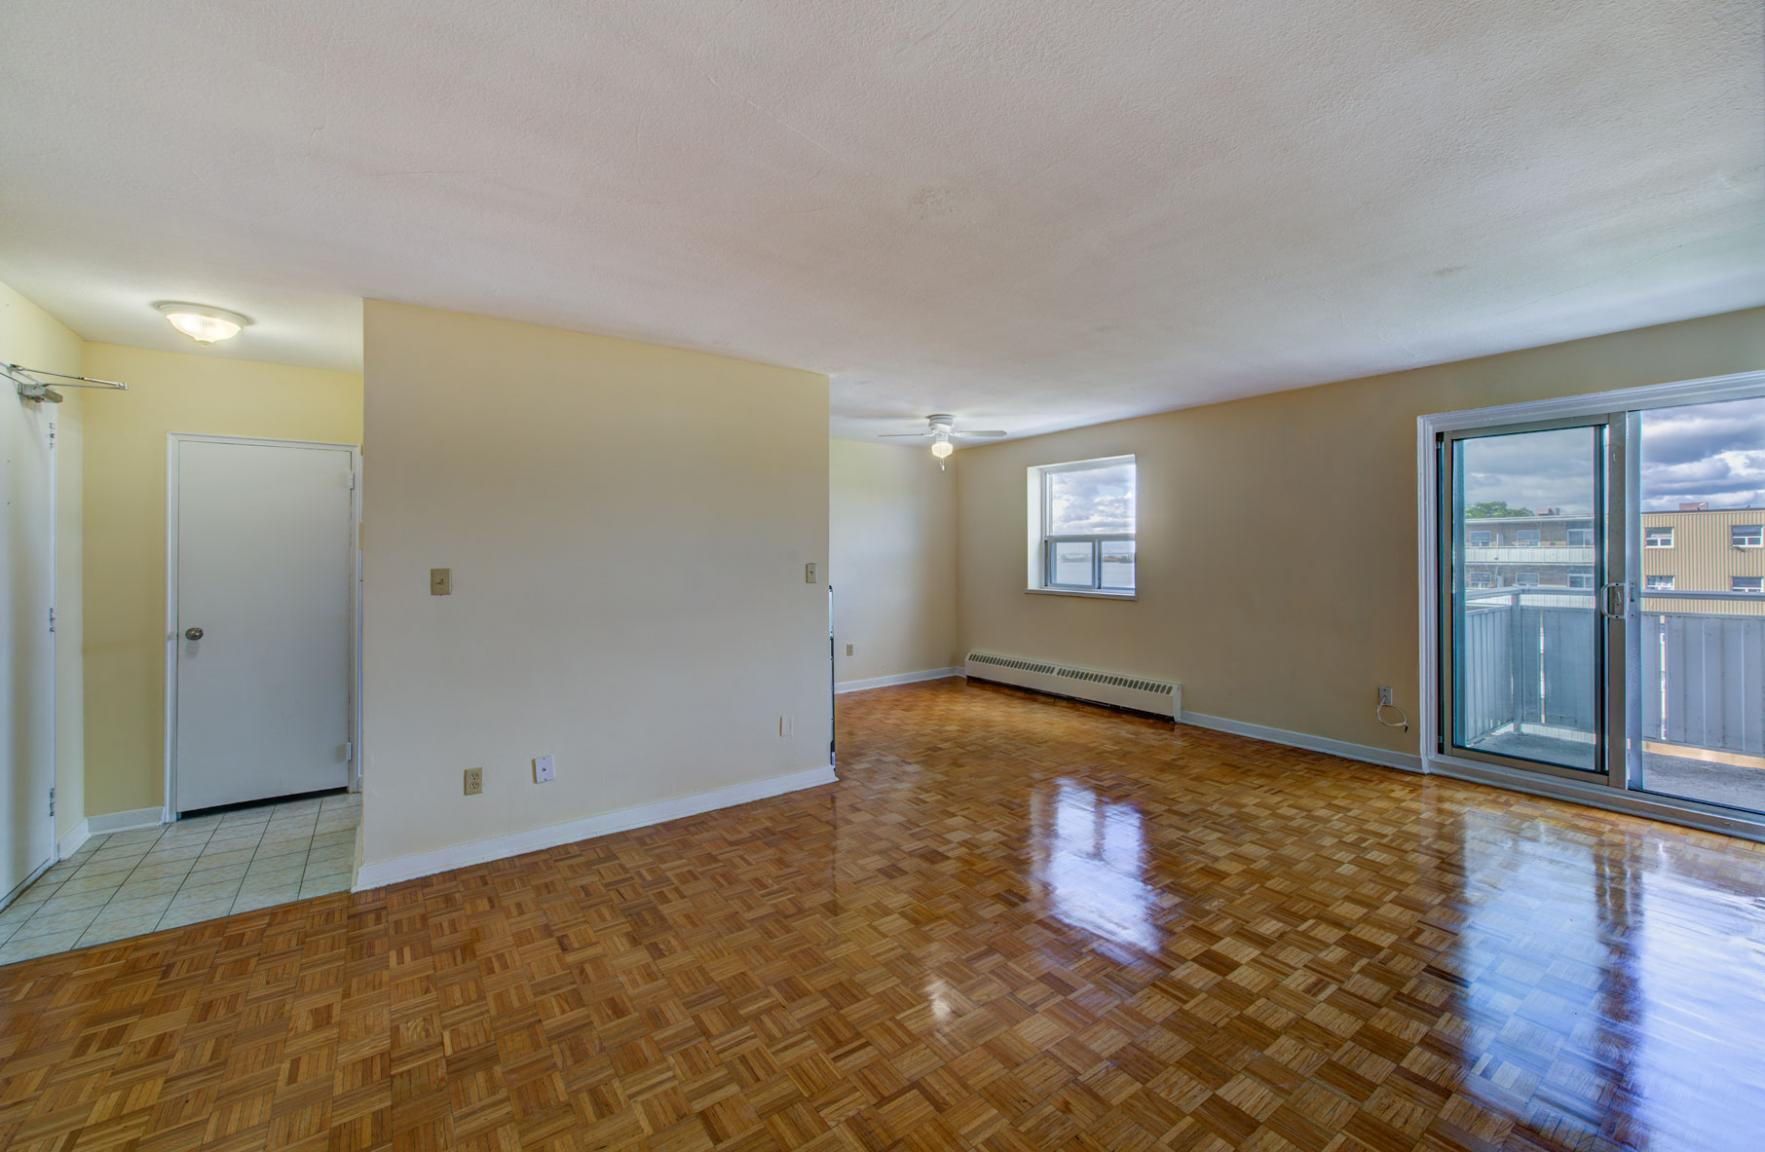 Studio / Bachelor Apartments for rent in Etobicoke at Lake Promenade Community - Photo 16 - RentersPages – L168089